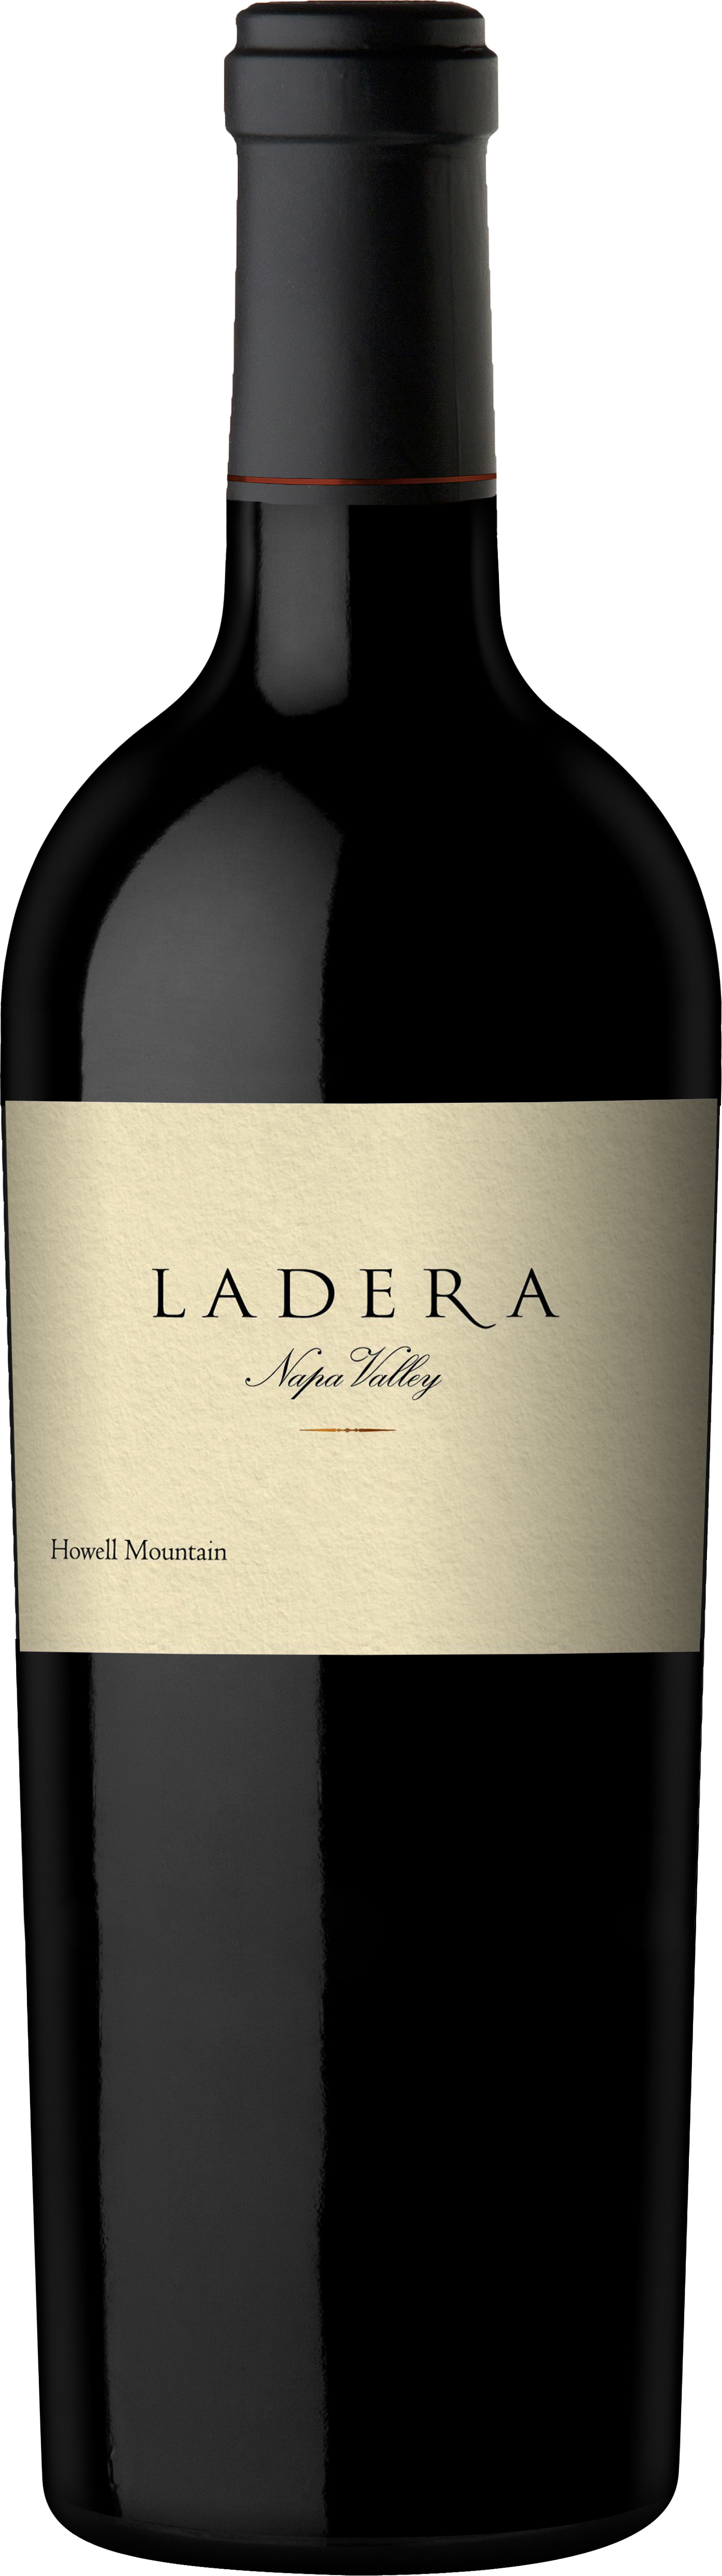 Product Image for 2005 Ladera Howell Mountain Cabernet Sauvignon